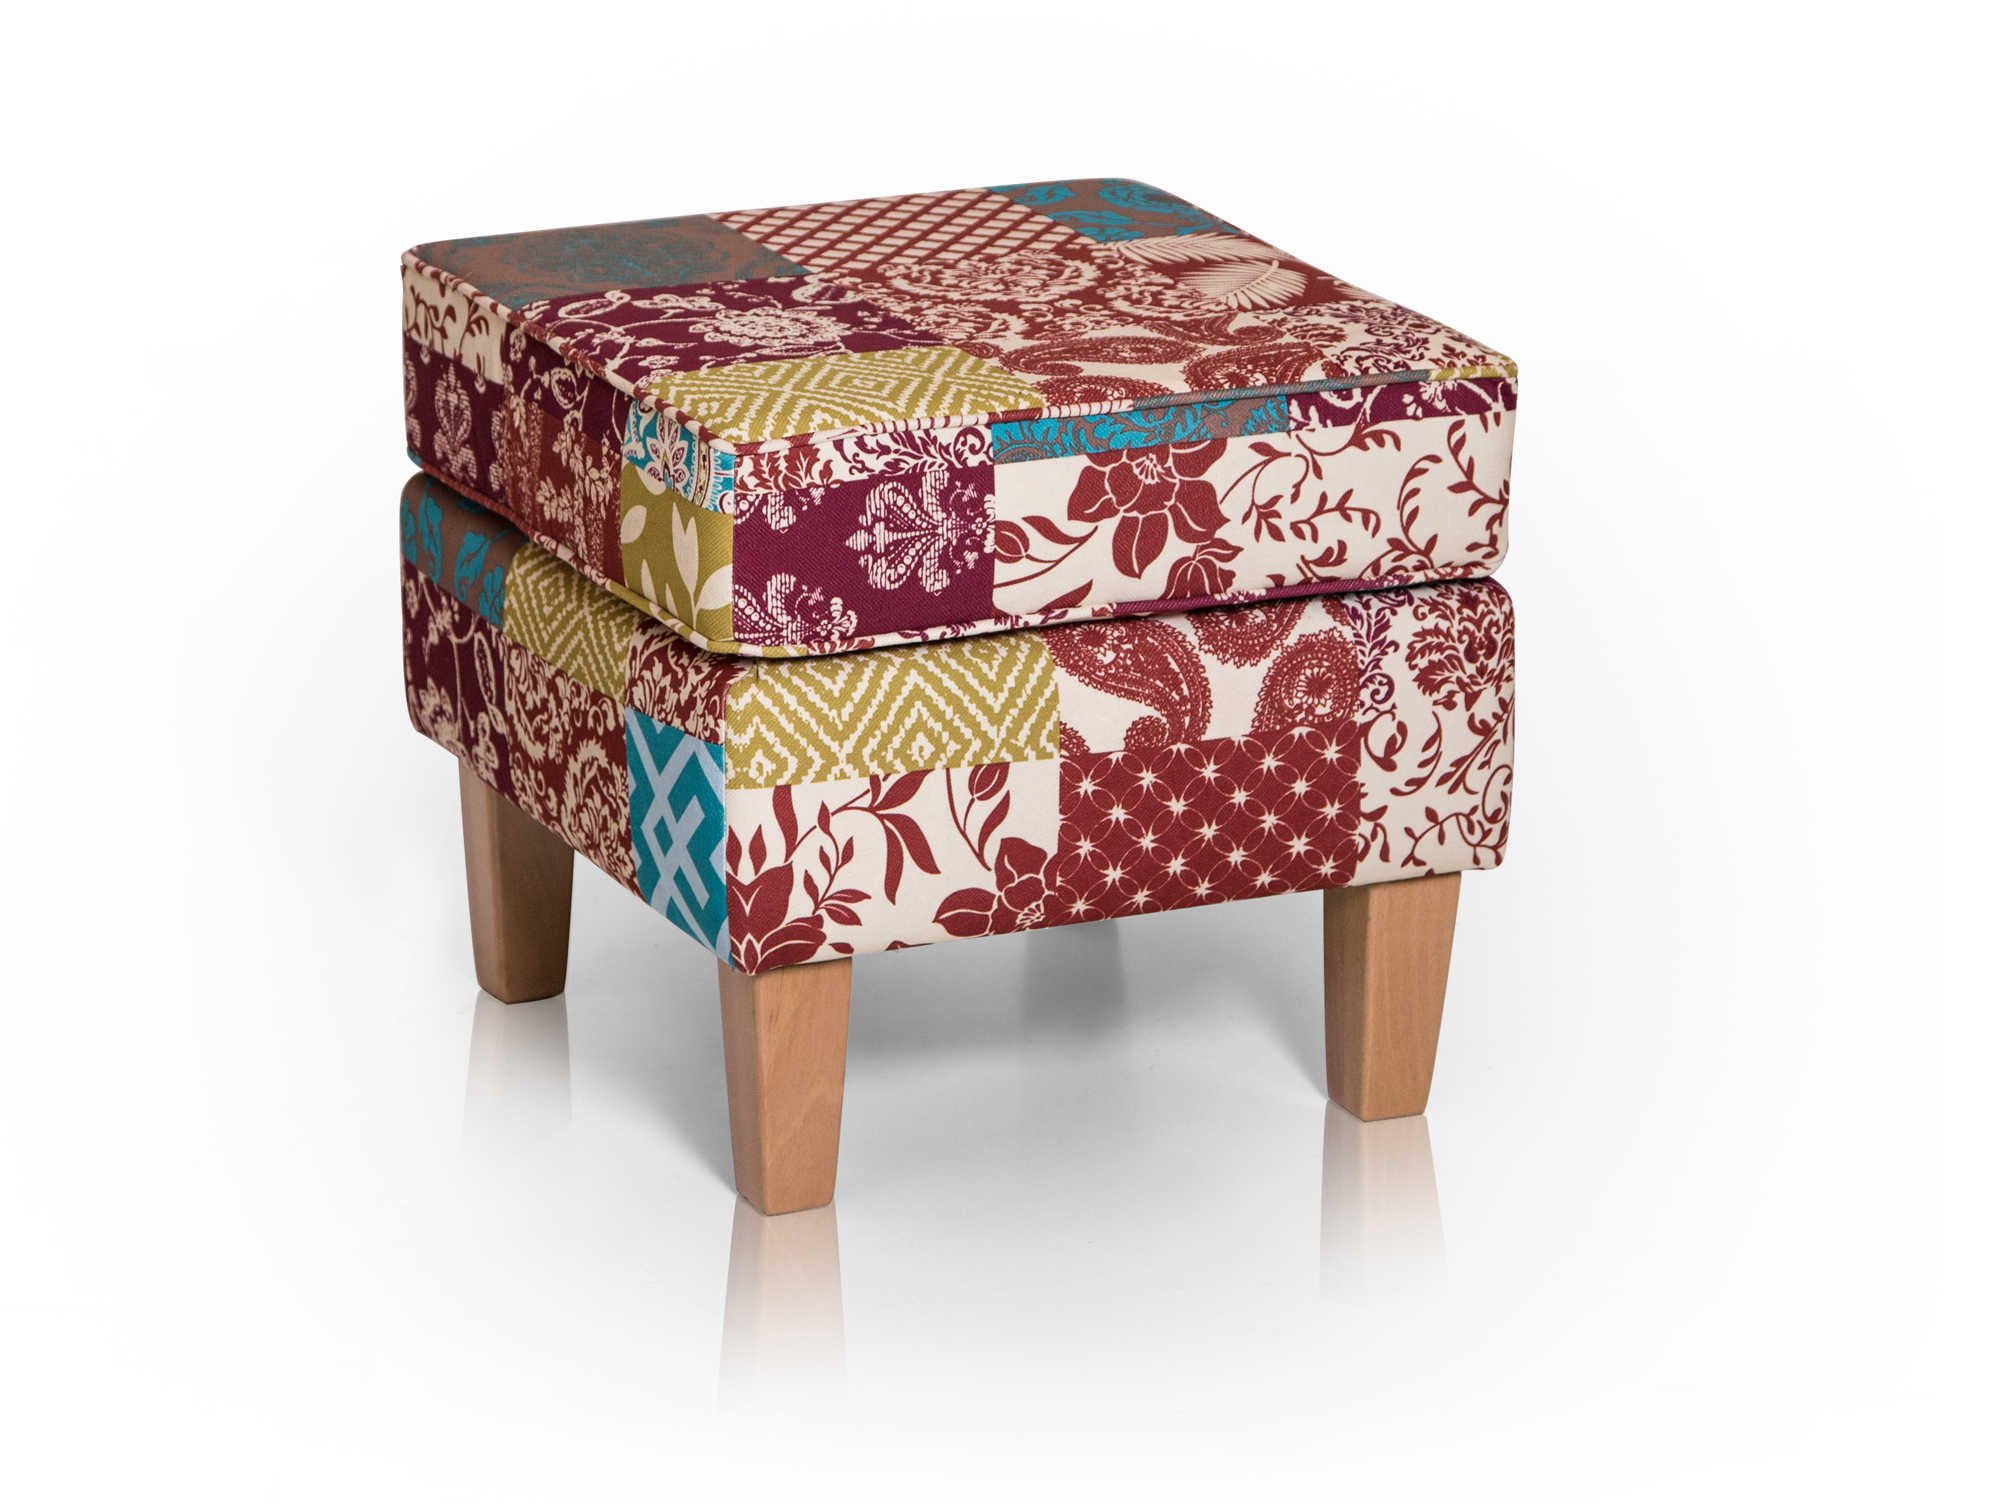 Patchwork Ohrensessel Mit Hocker Willy Ohrensessel 43 Hocker Patchwork Bunt